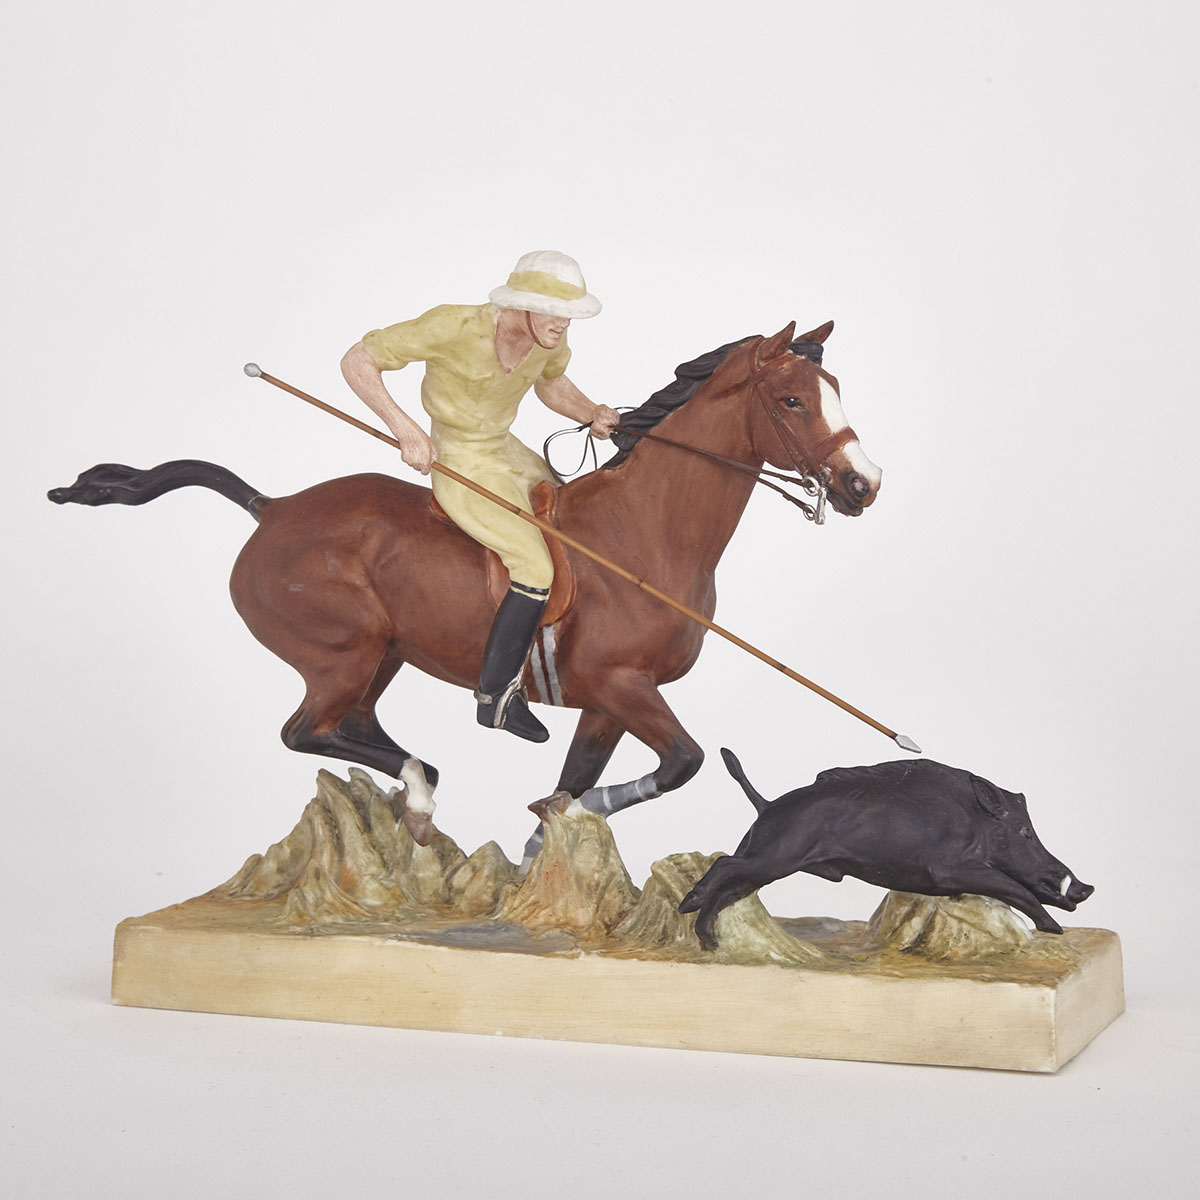 Royal Worcester Model, 'Hog Hunting', Doris Lindner, c.1965